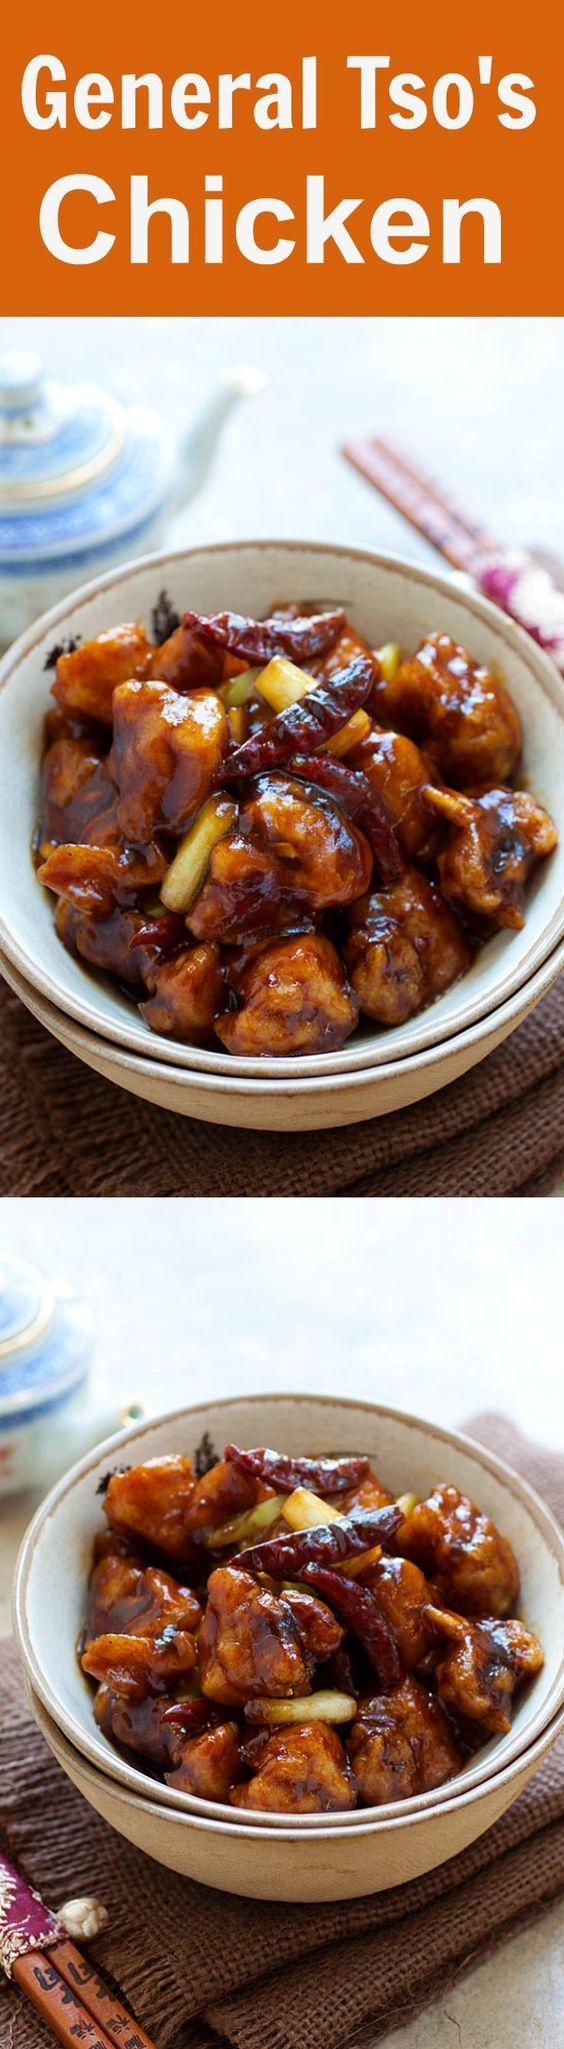 http://rasamalaysia.com/general-tsos-chicken/[EXTRACT]                     General Tso's Chicken Recipe. You can make your favorite Chinese dish at home with this eays, fool-proof, guaranteed to please recipe! rasamalaysia.com